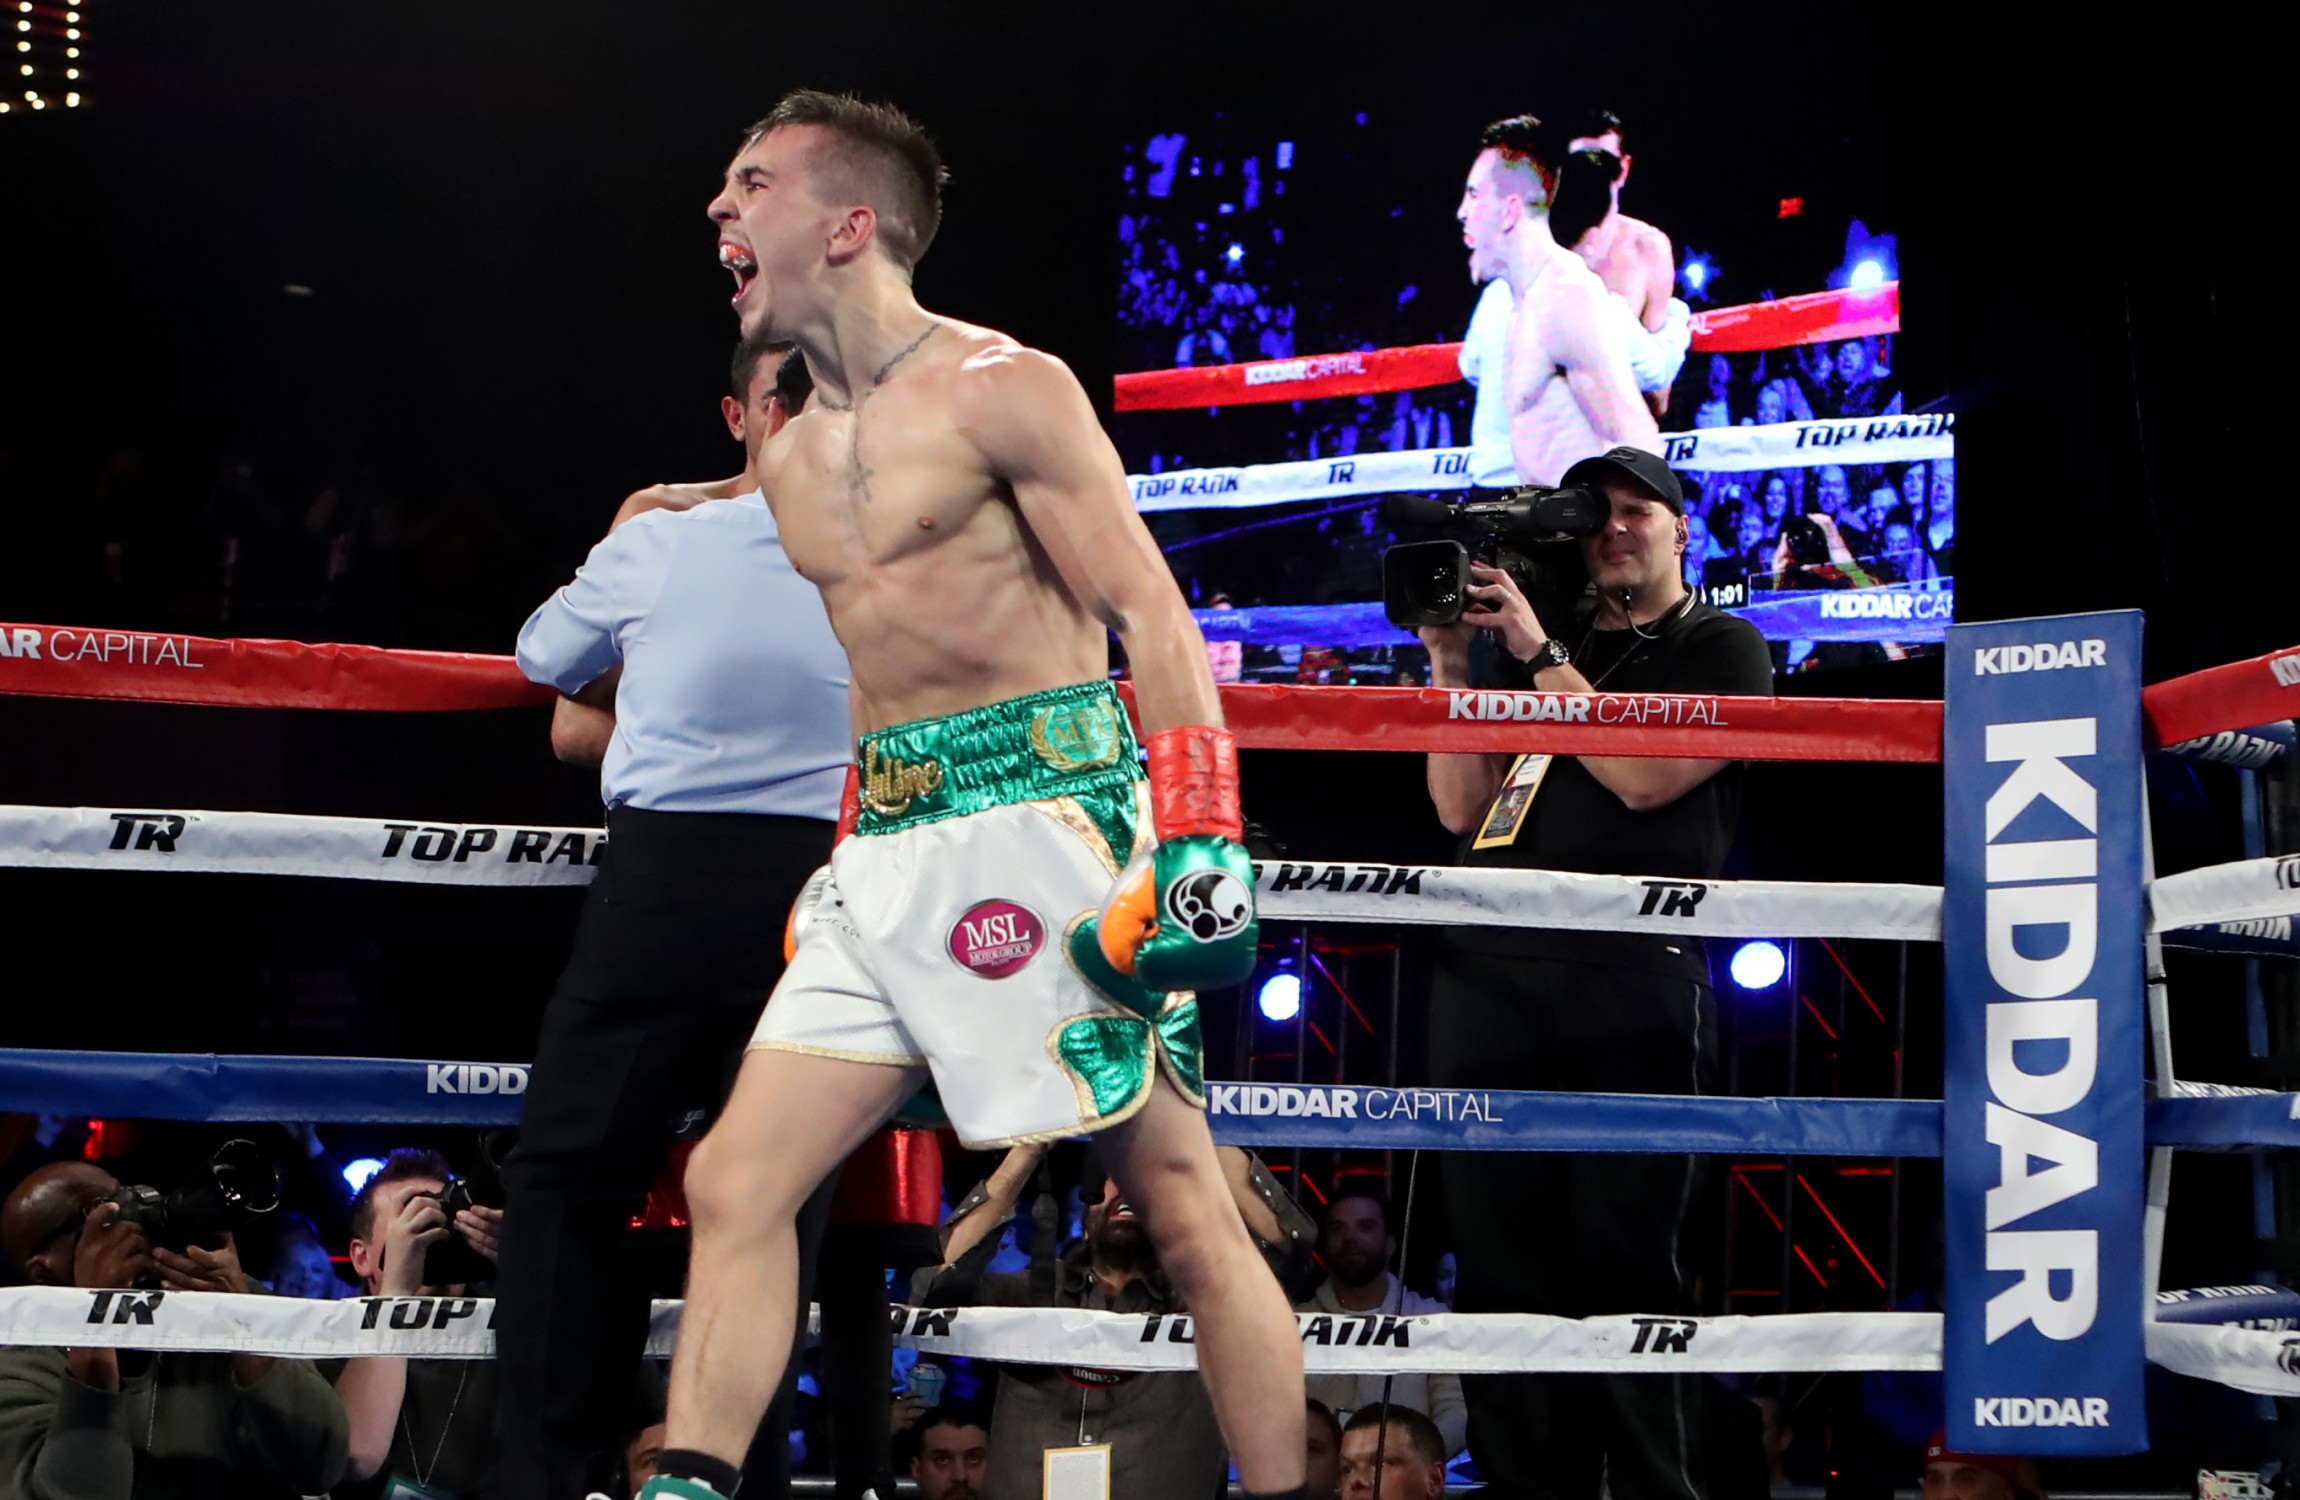 Michael Conlan shines during NY victory